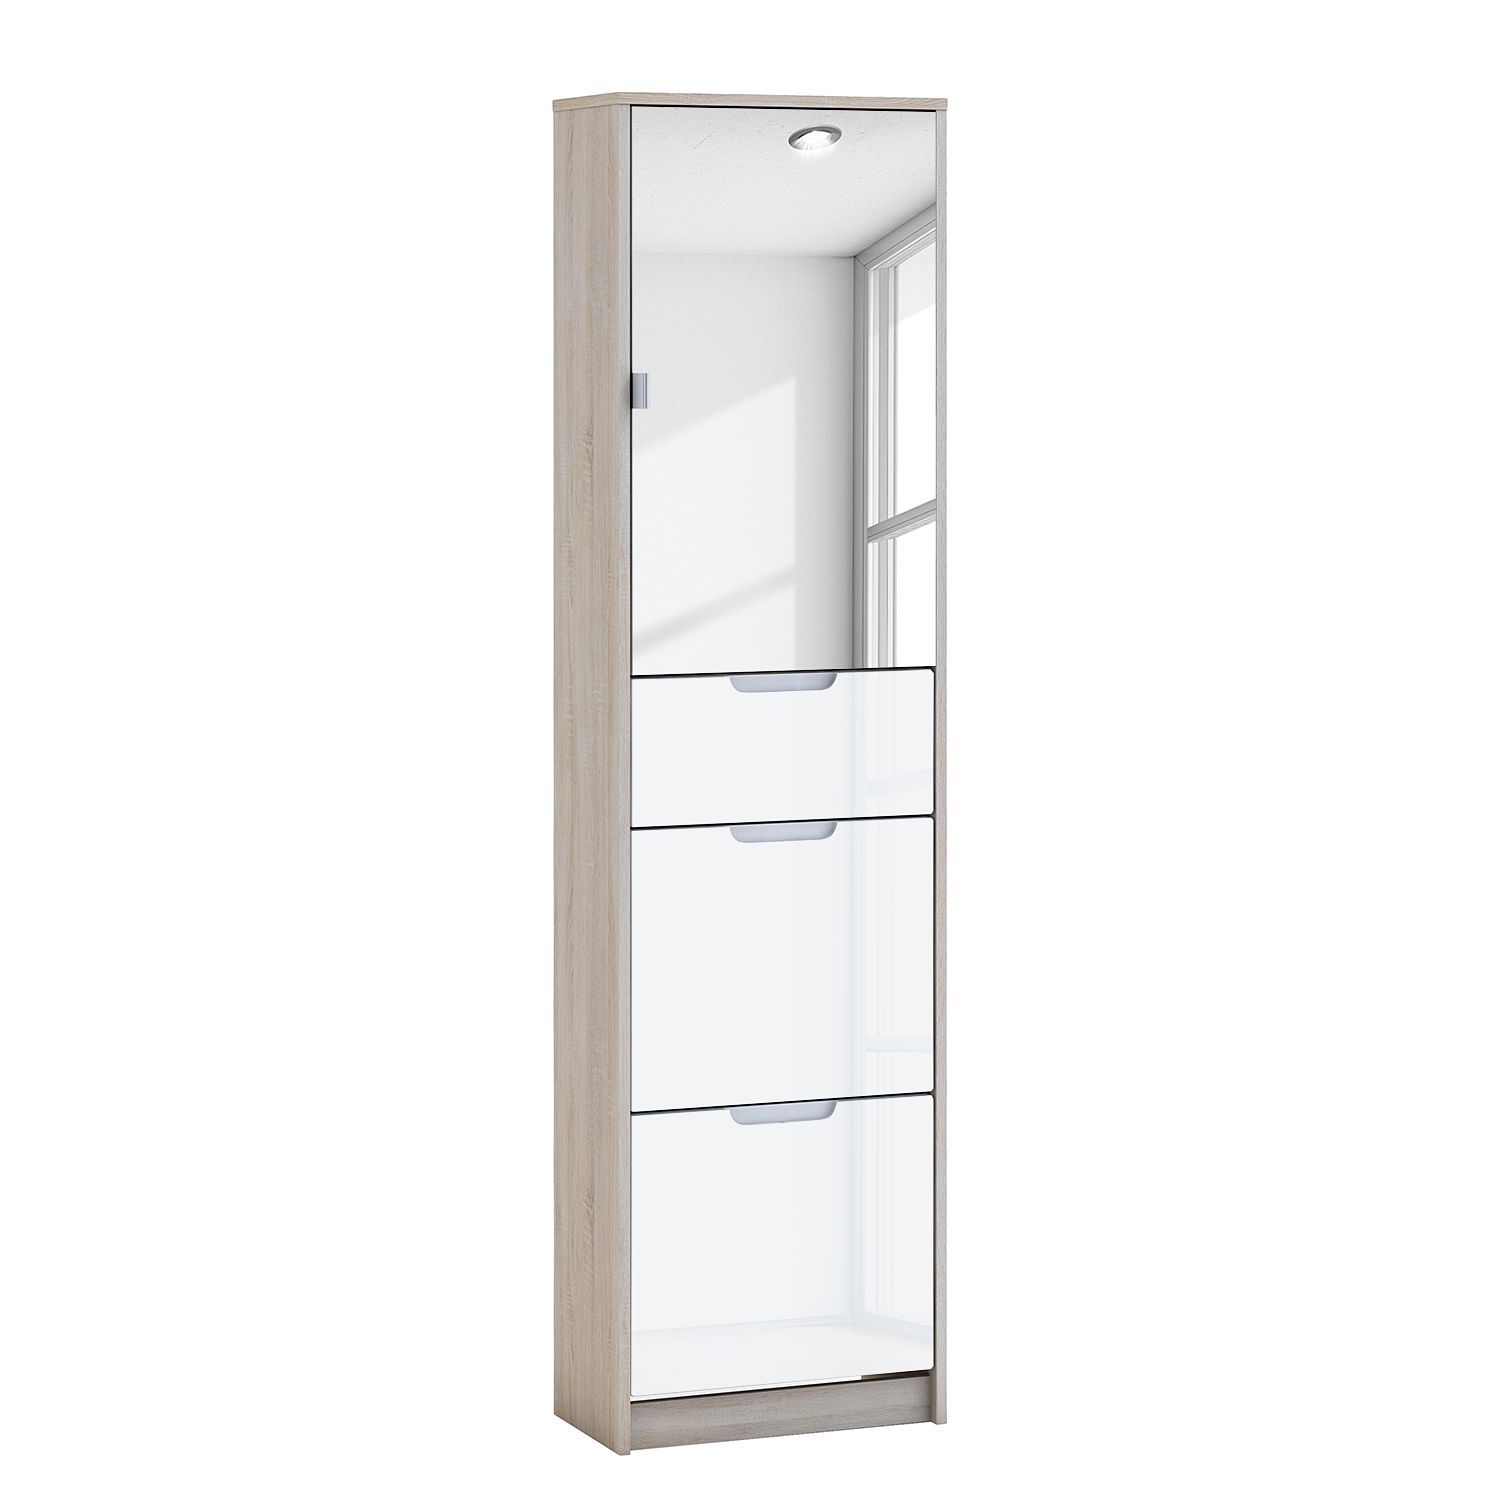 schuhschrank 80 cm breit schuhschrank lastilla aus wildeiche bianco 80 cm massivholz. Black Bedroom Furniture Sets. Home Design Ideas